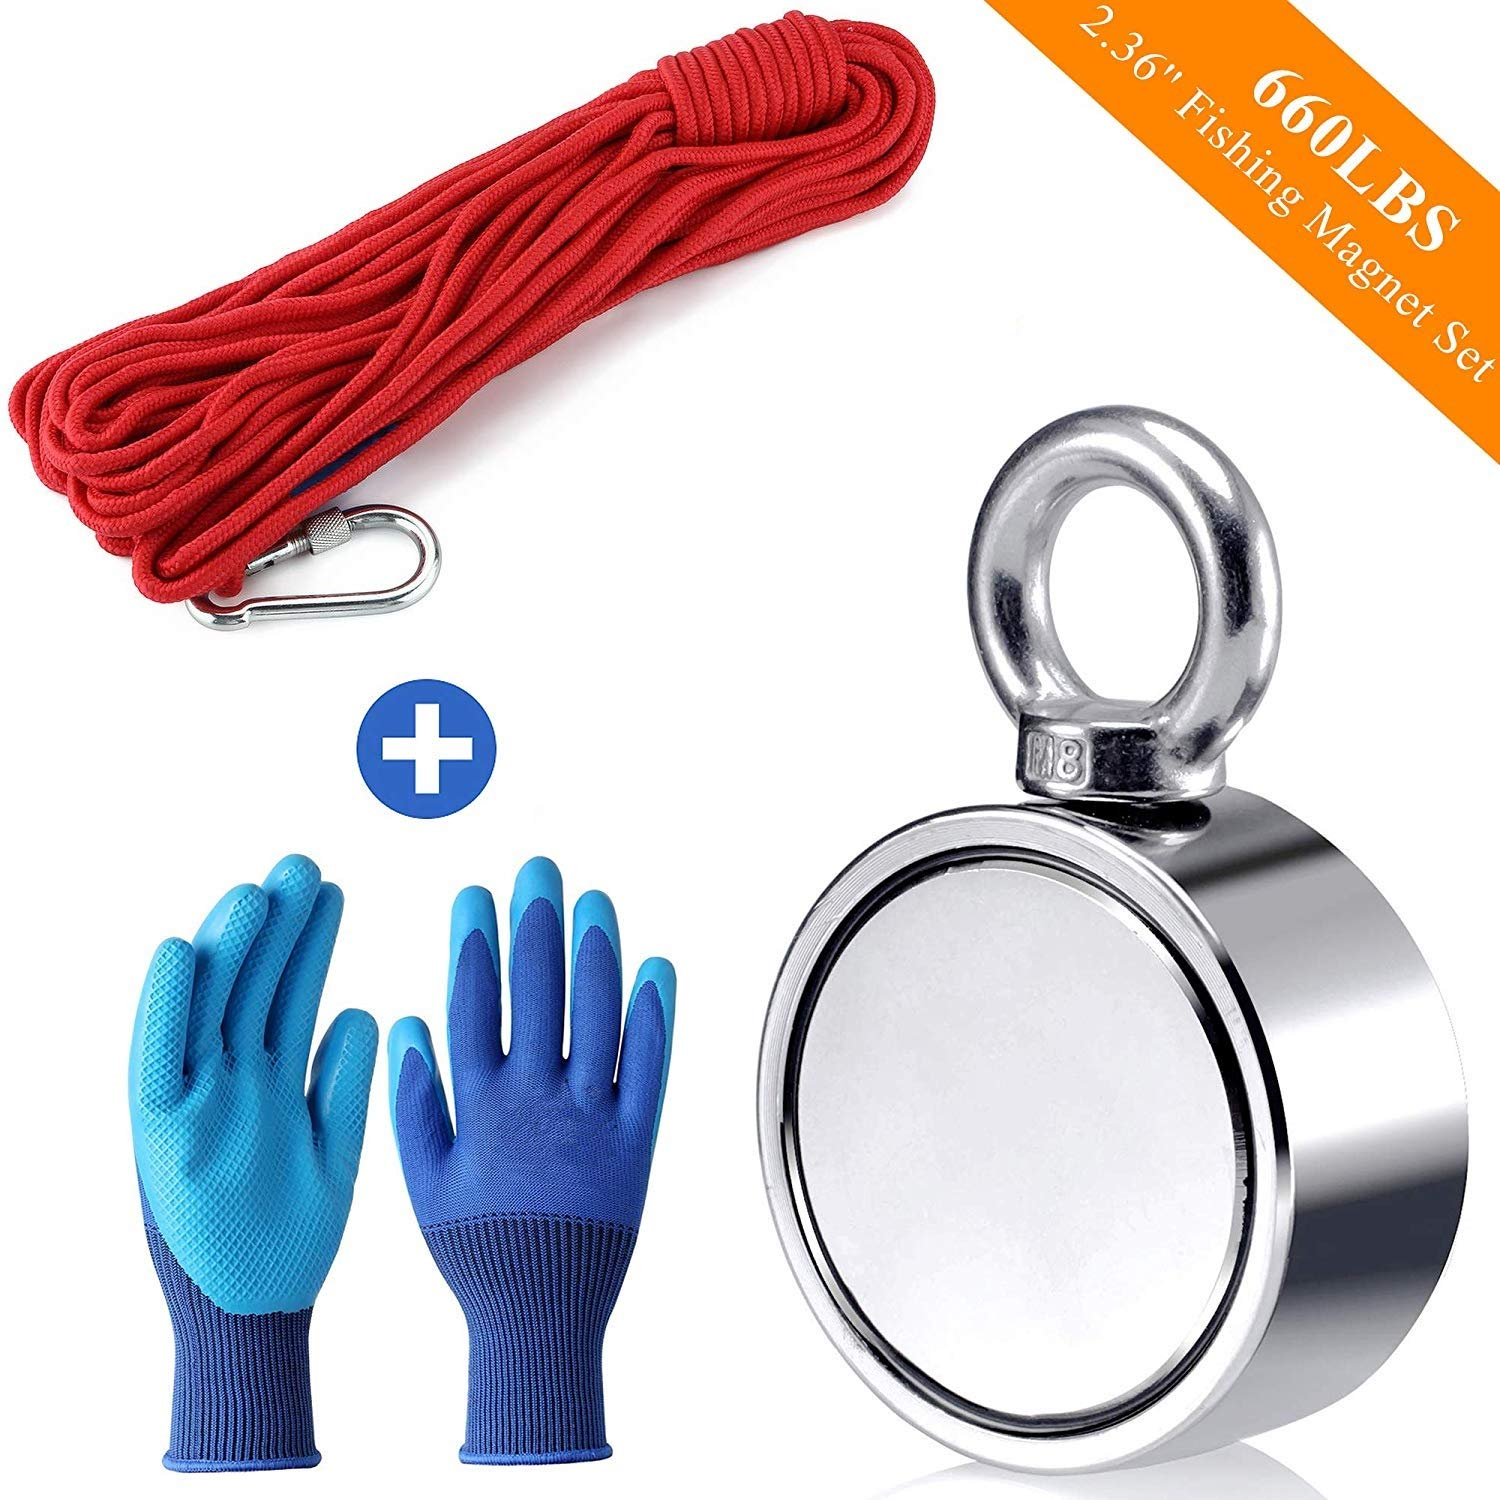 Fishing Magnet with Rope Glove Set, 660LB Pulling Force Super Strong Neodymium Magnet with 32 ft Nylon Rope & Carabiner for Magnet Fishing and Retrieving in River - 60mm Diameter by seedoo